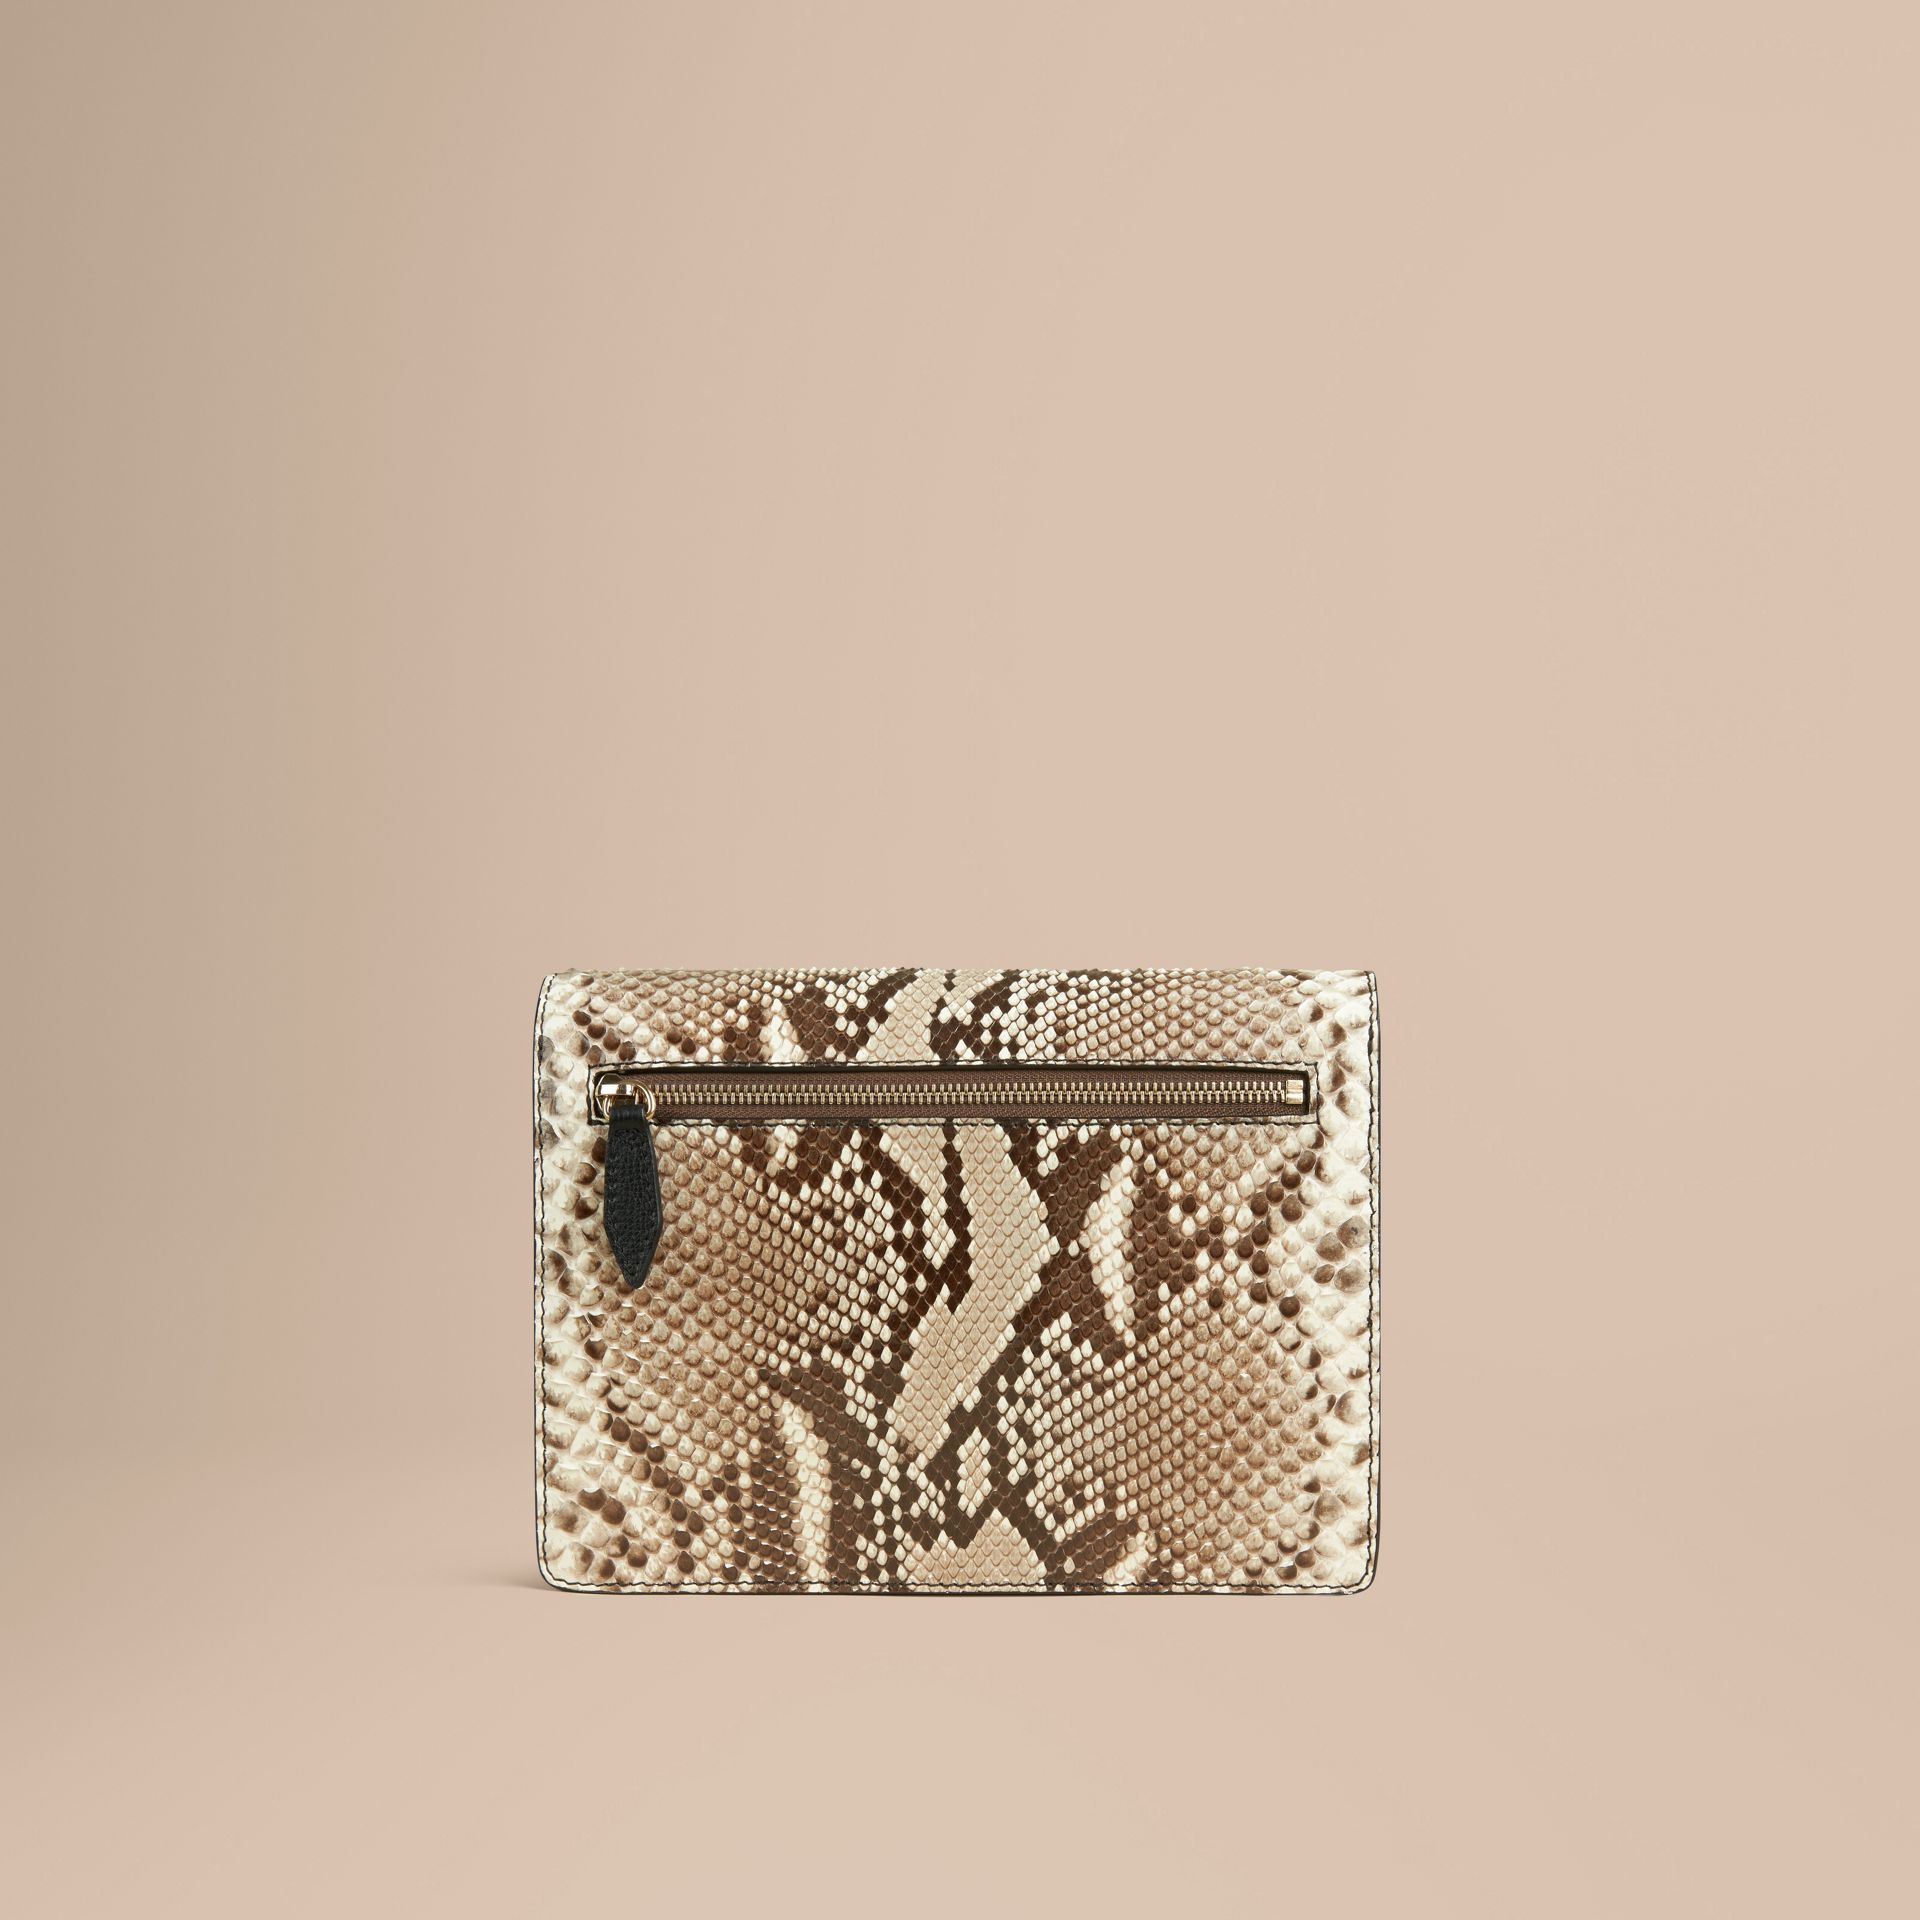 Small Python Crossbody Bag in Natural - Women | Burberry Canada - gallery image 3